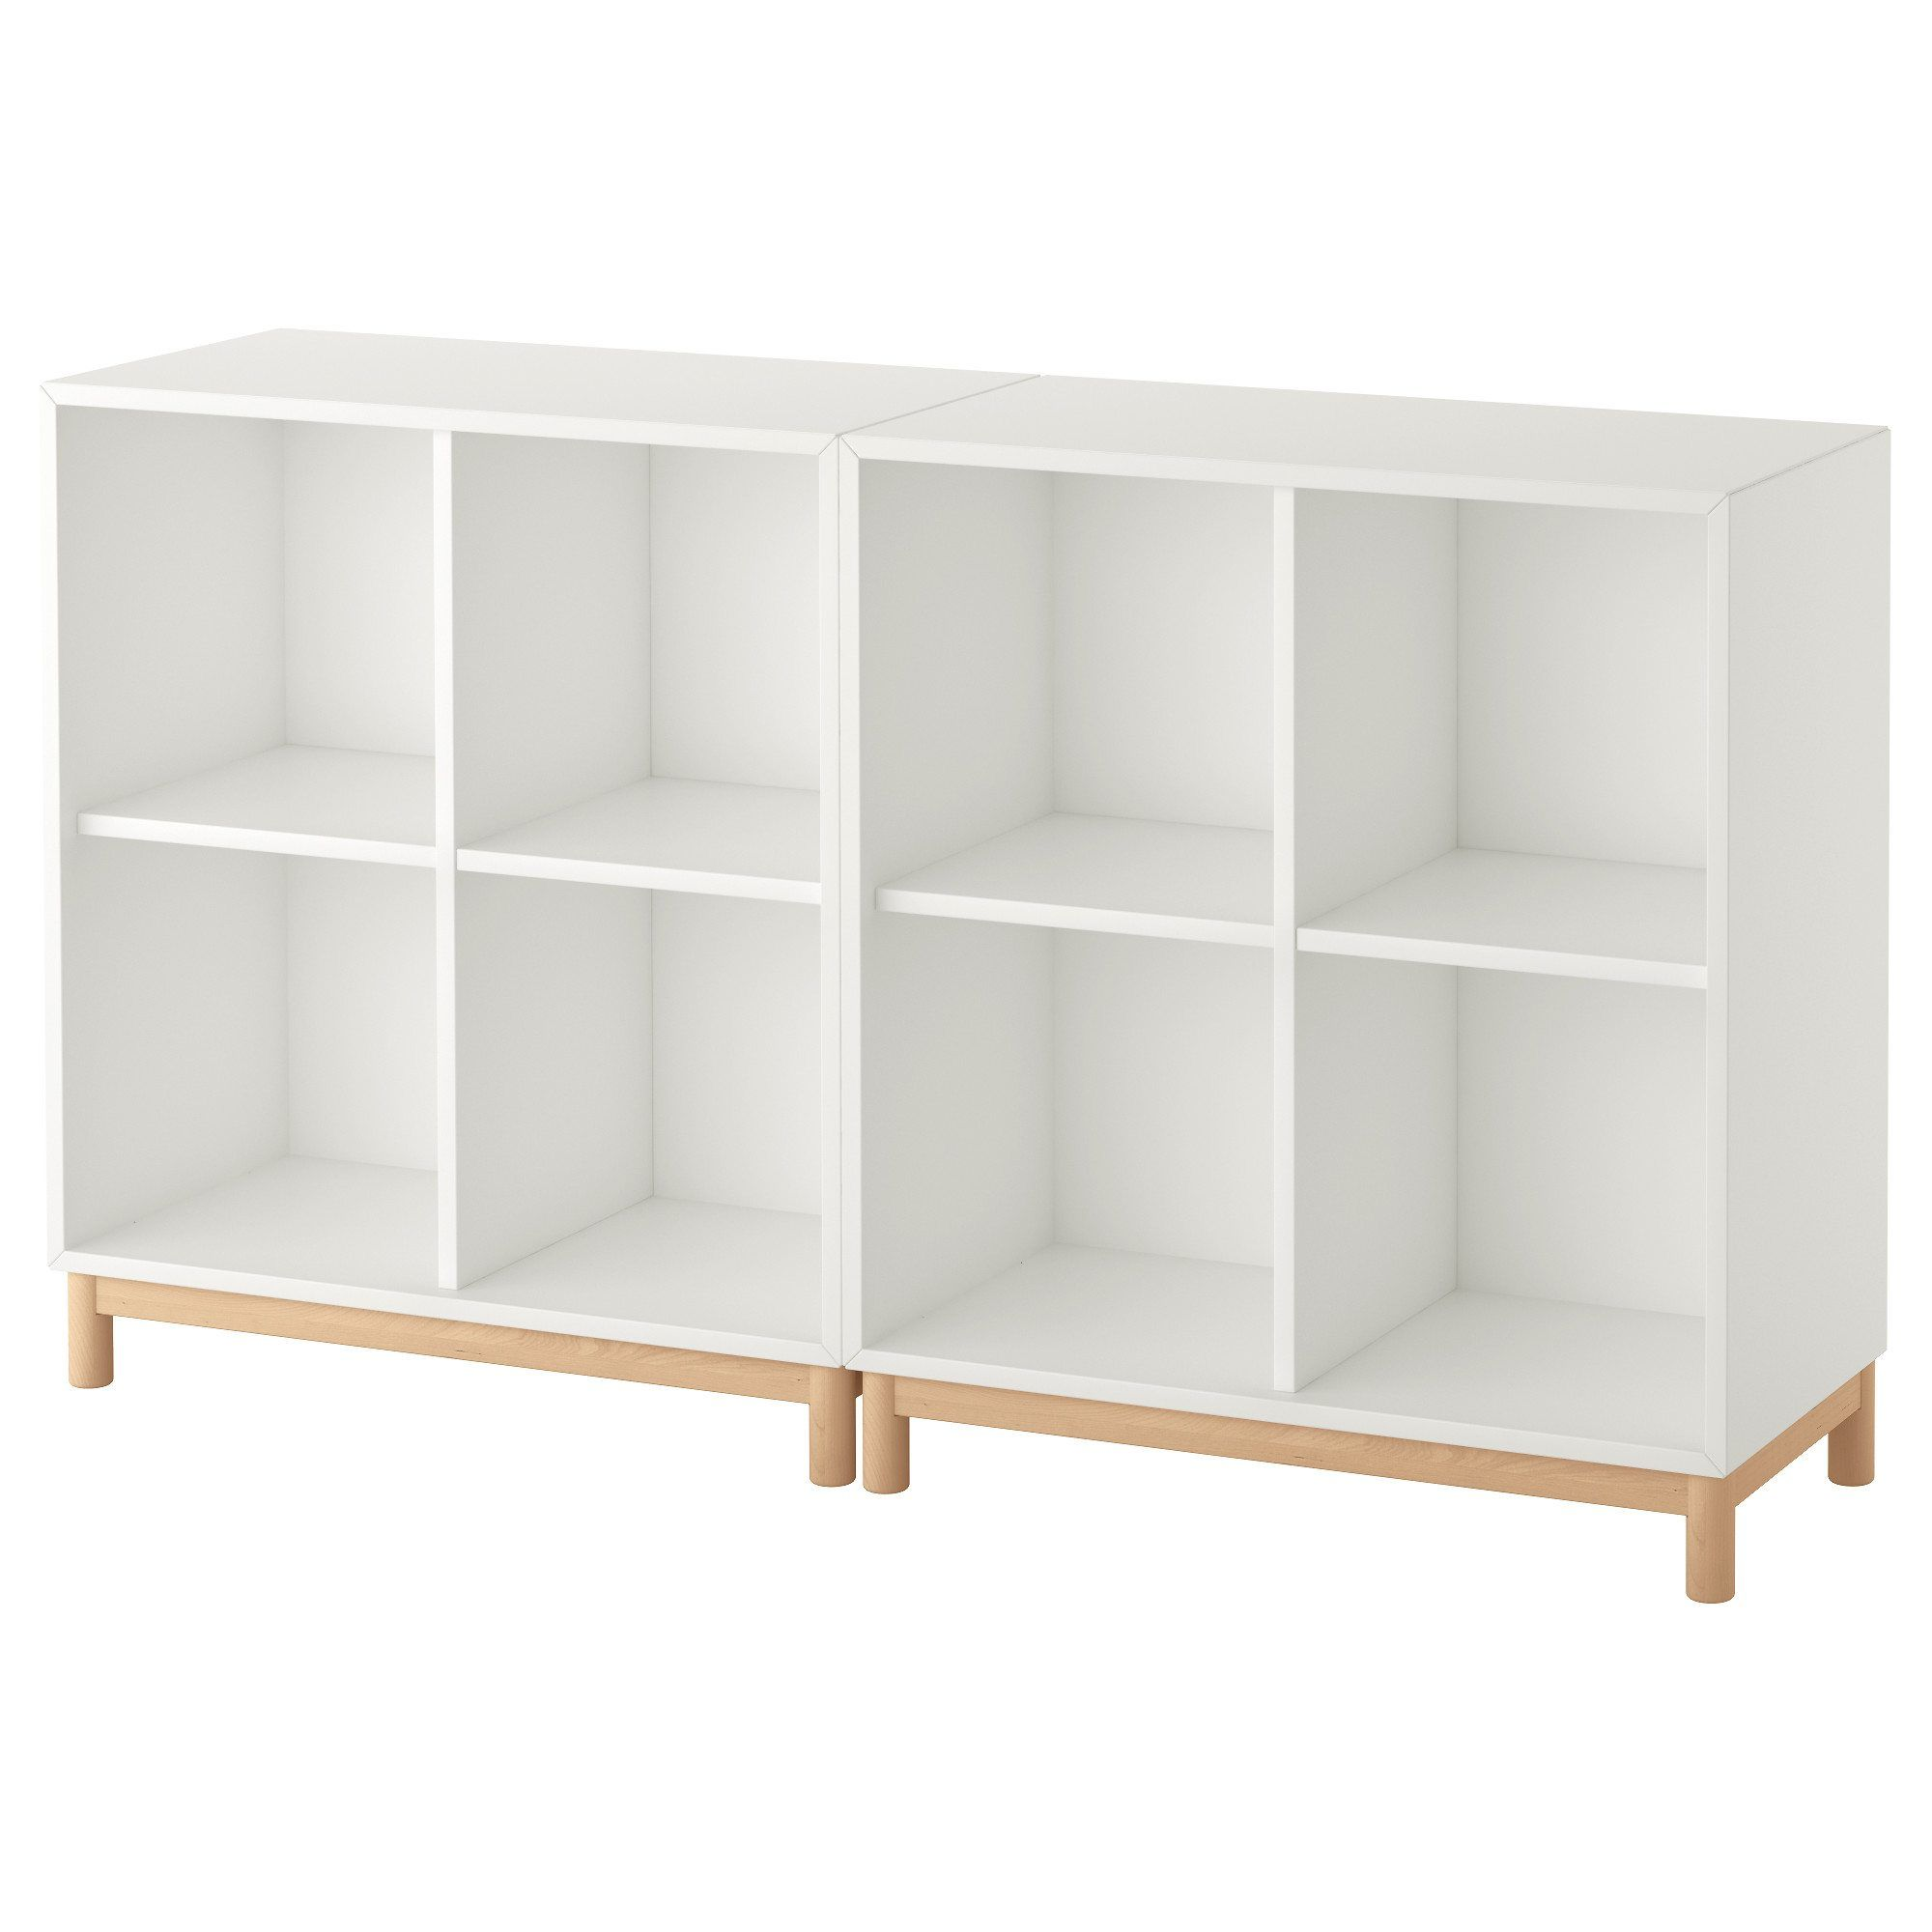 New ikea eket shelves new vinyl storage option djworx for Ikea lp storage